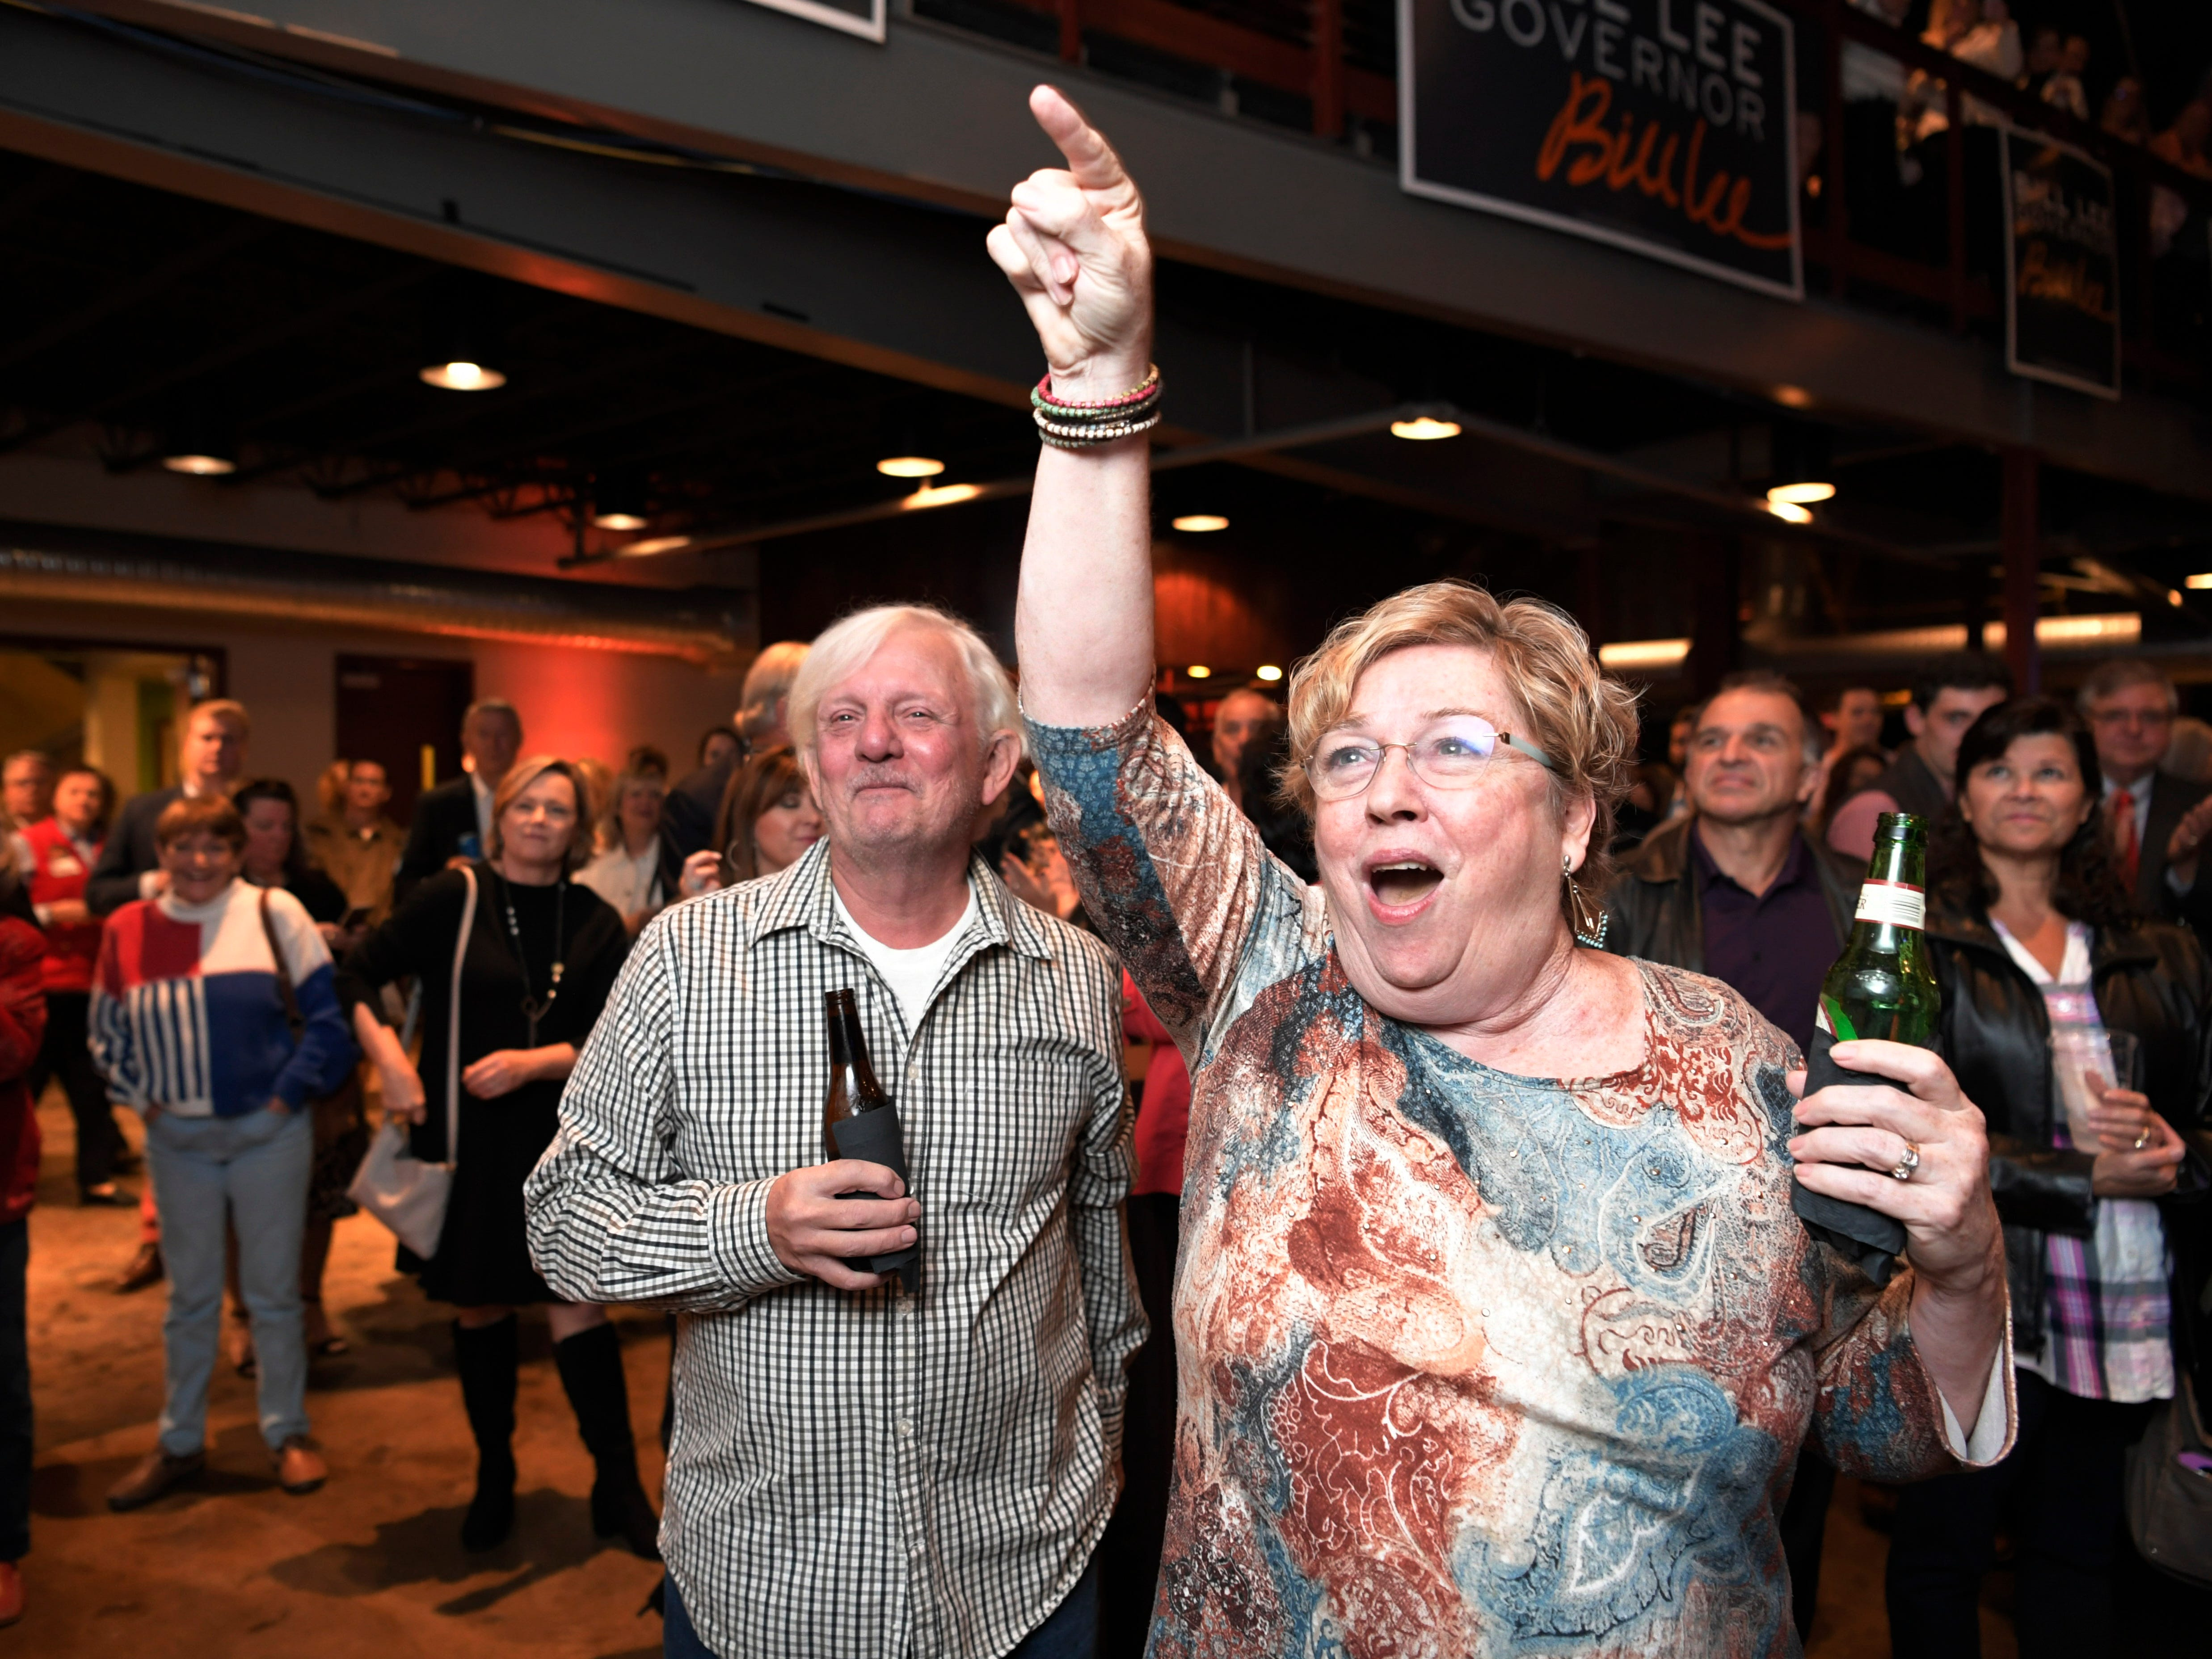 Mary Neil and her husband Findlay of Nashville cheer as election results come in during the election party for Republican gubernatorial candidate Bill Lee at the Factory in Franklin, Tenn. on Tuesday, Nov. 6, 2018.